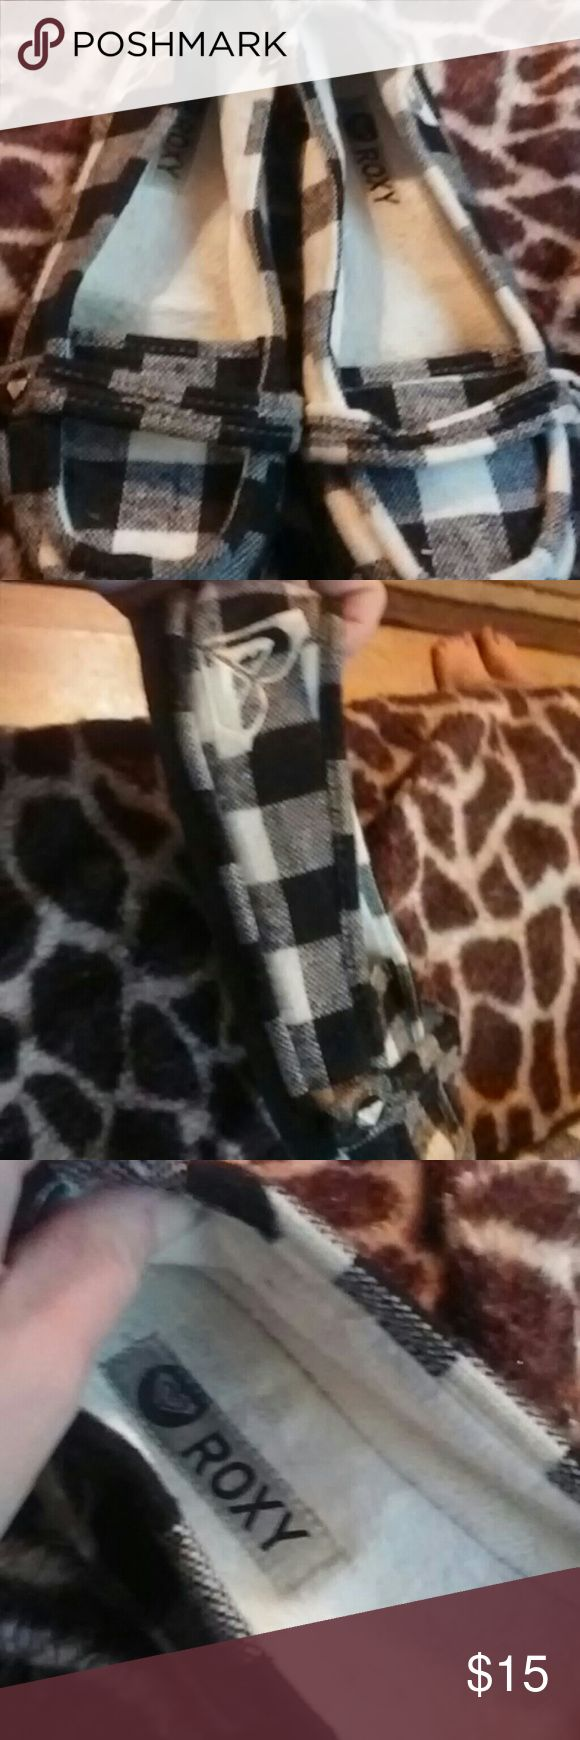 Roxy slippers Black and white checkered slippers. Good used condition no stains or tears. Soft almost fleece inside. Roxy Shoes Slippers